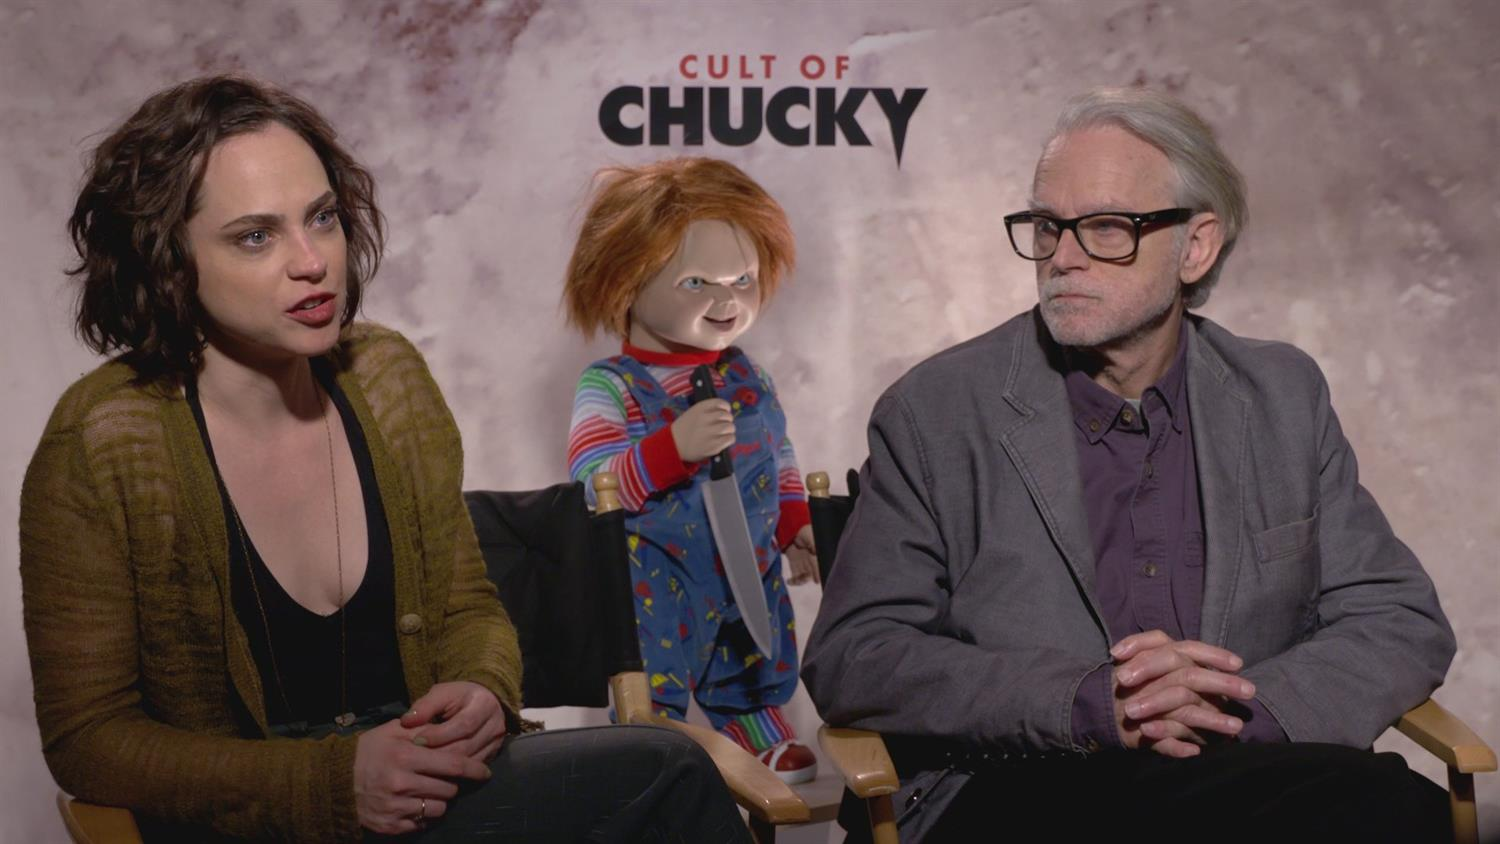 Cult of Chucky Cast: Why Chucky Has Lasted, and Why He's Funny